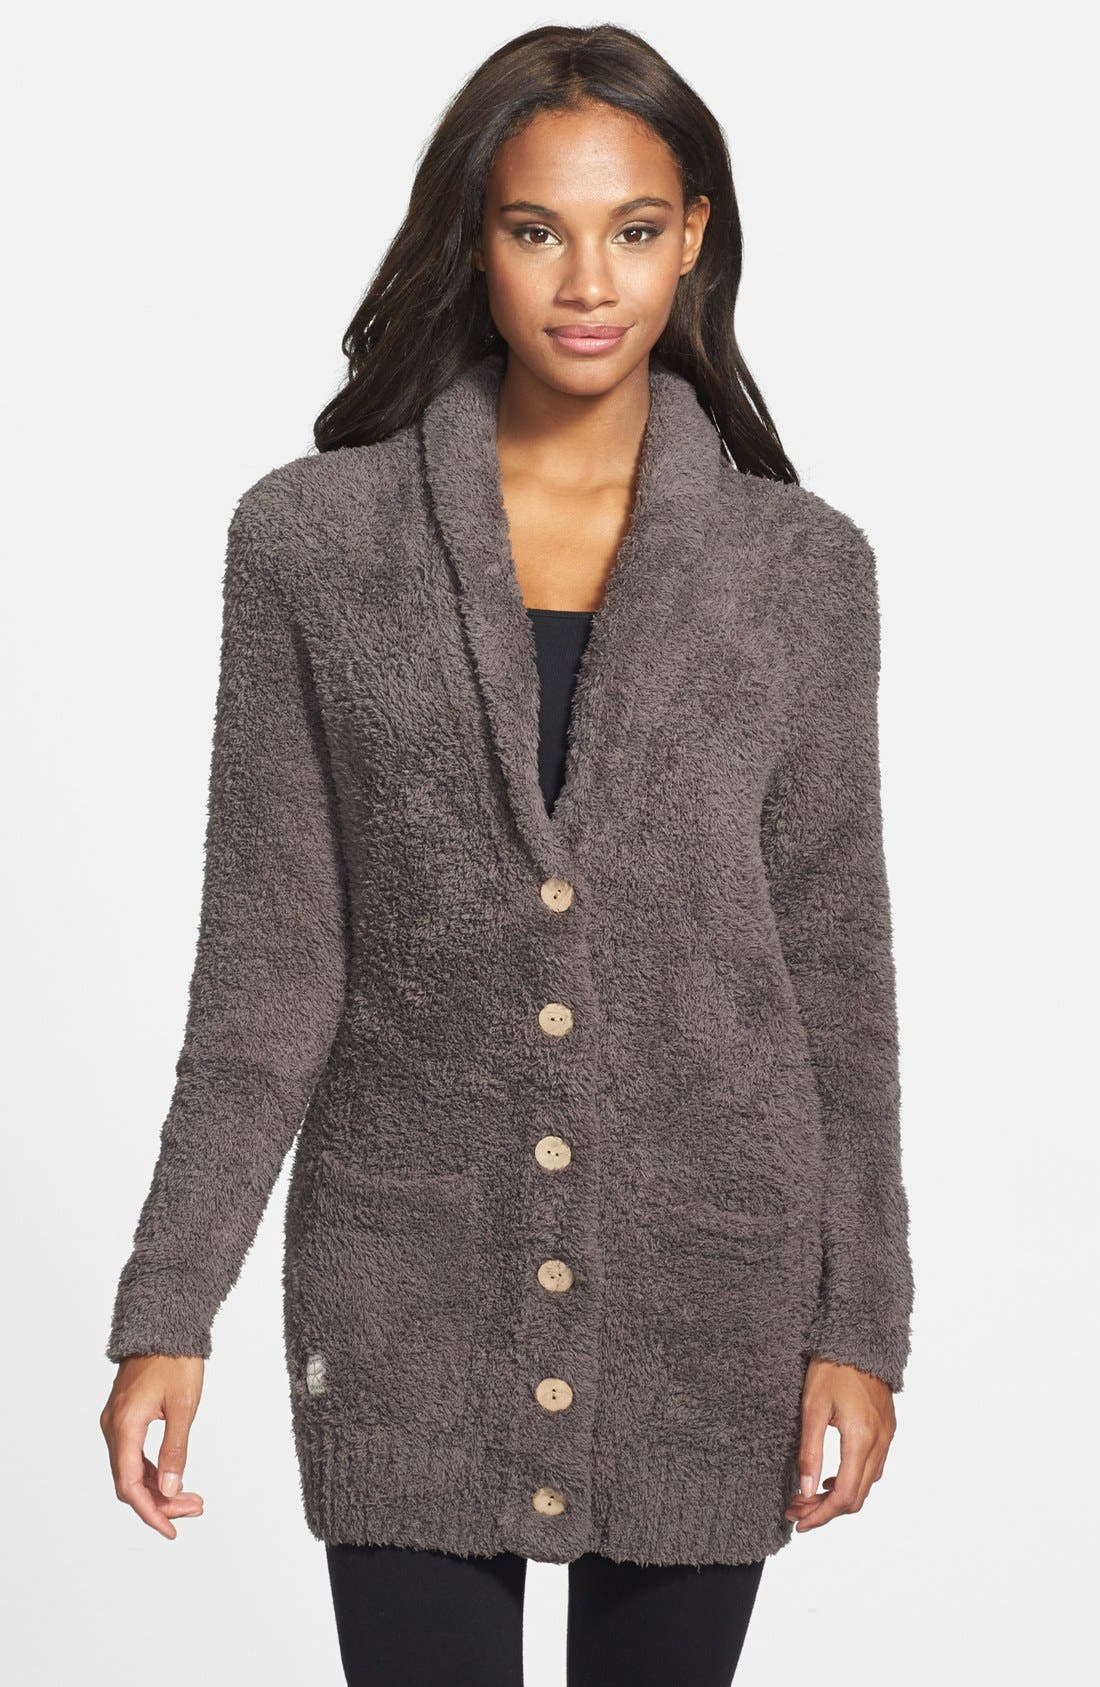 Alternate Image 1 Selected - Barefoot Dreams® Relaxed Fit CozyChic® Cardigan